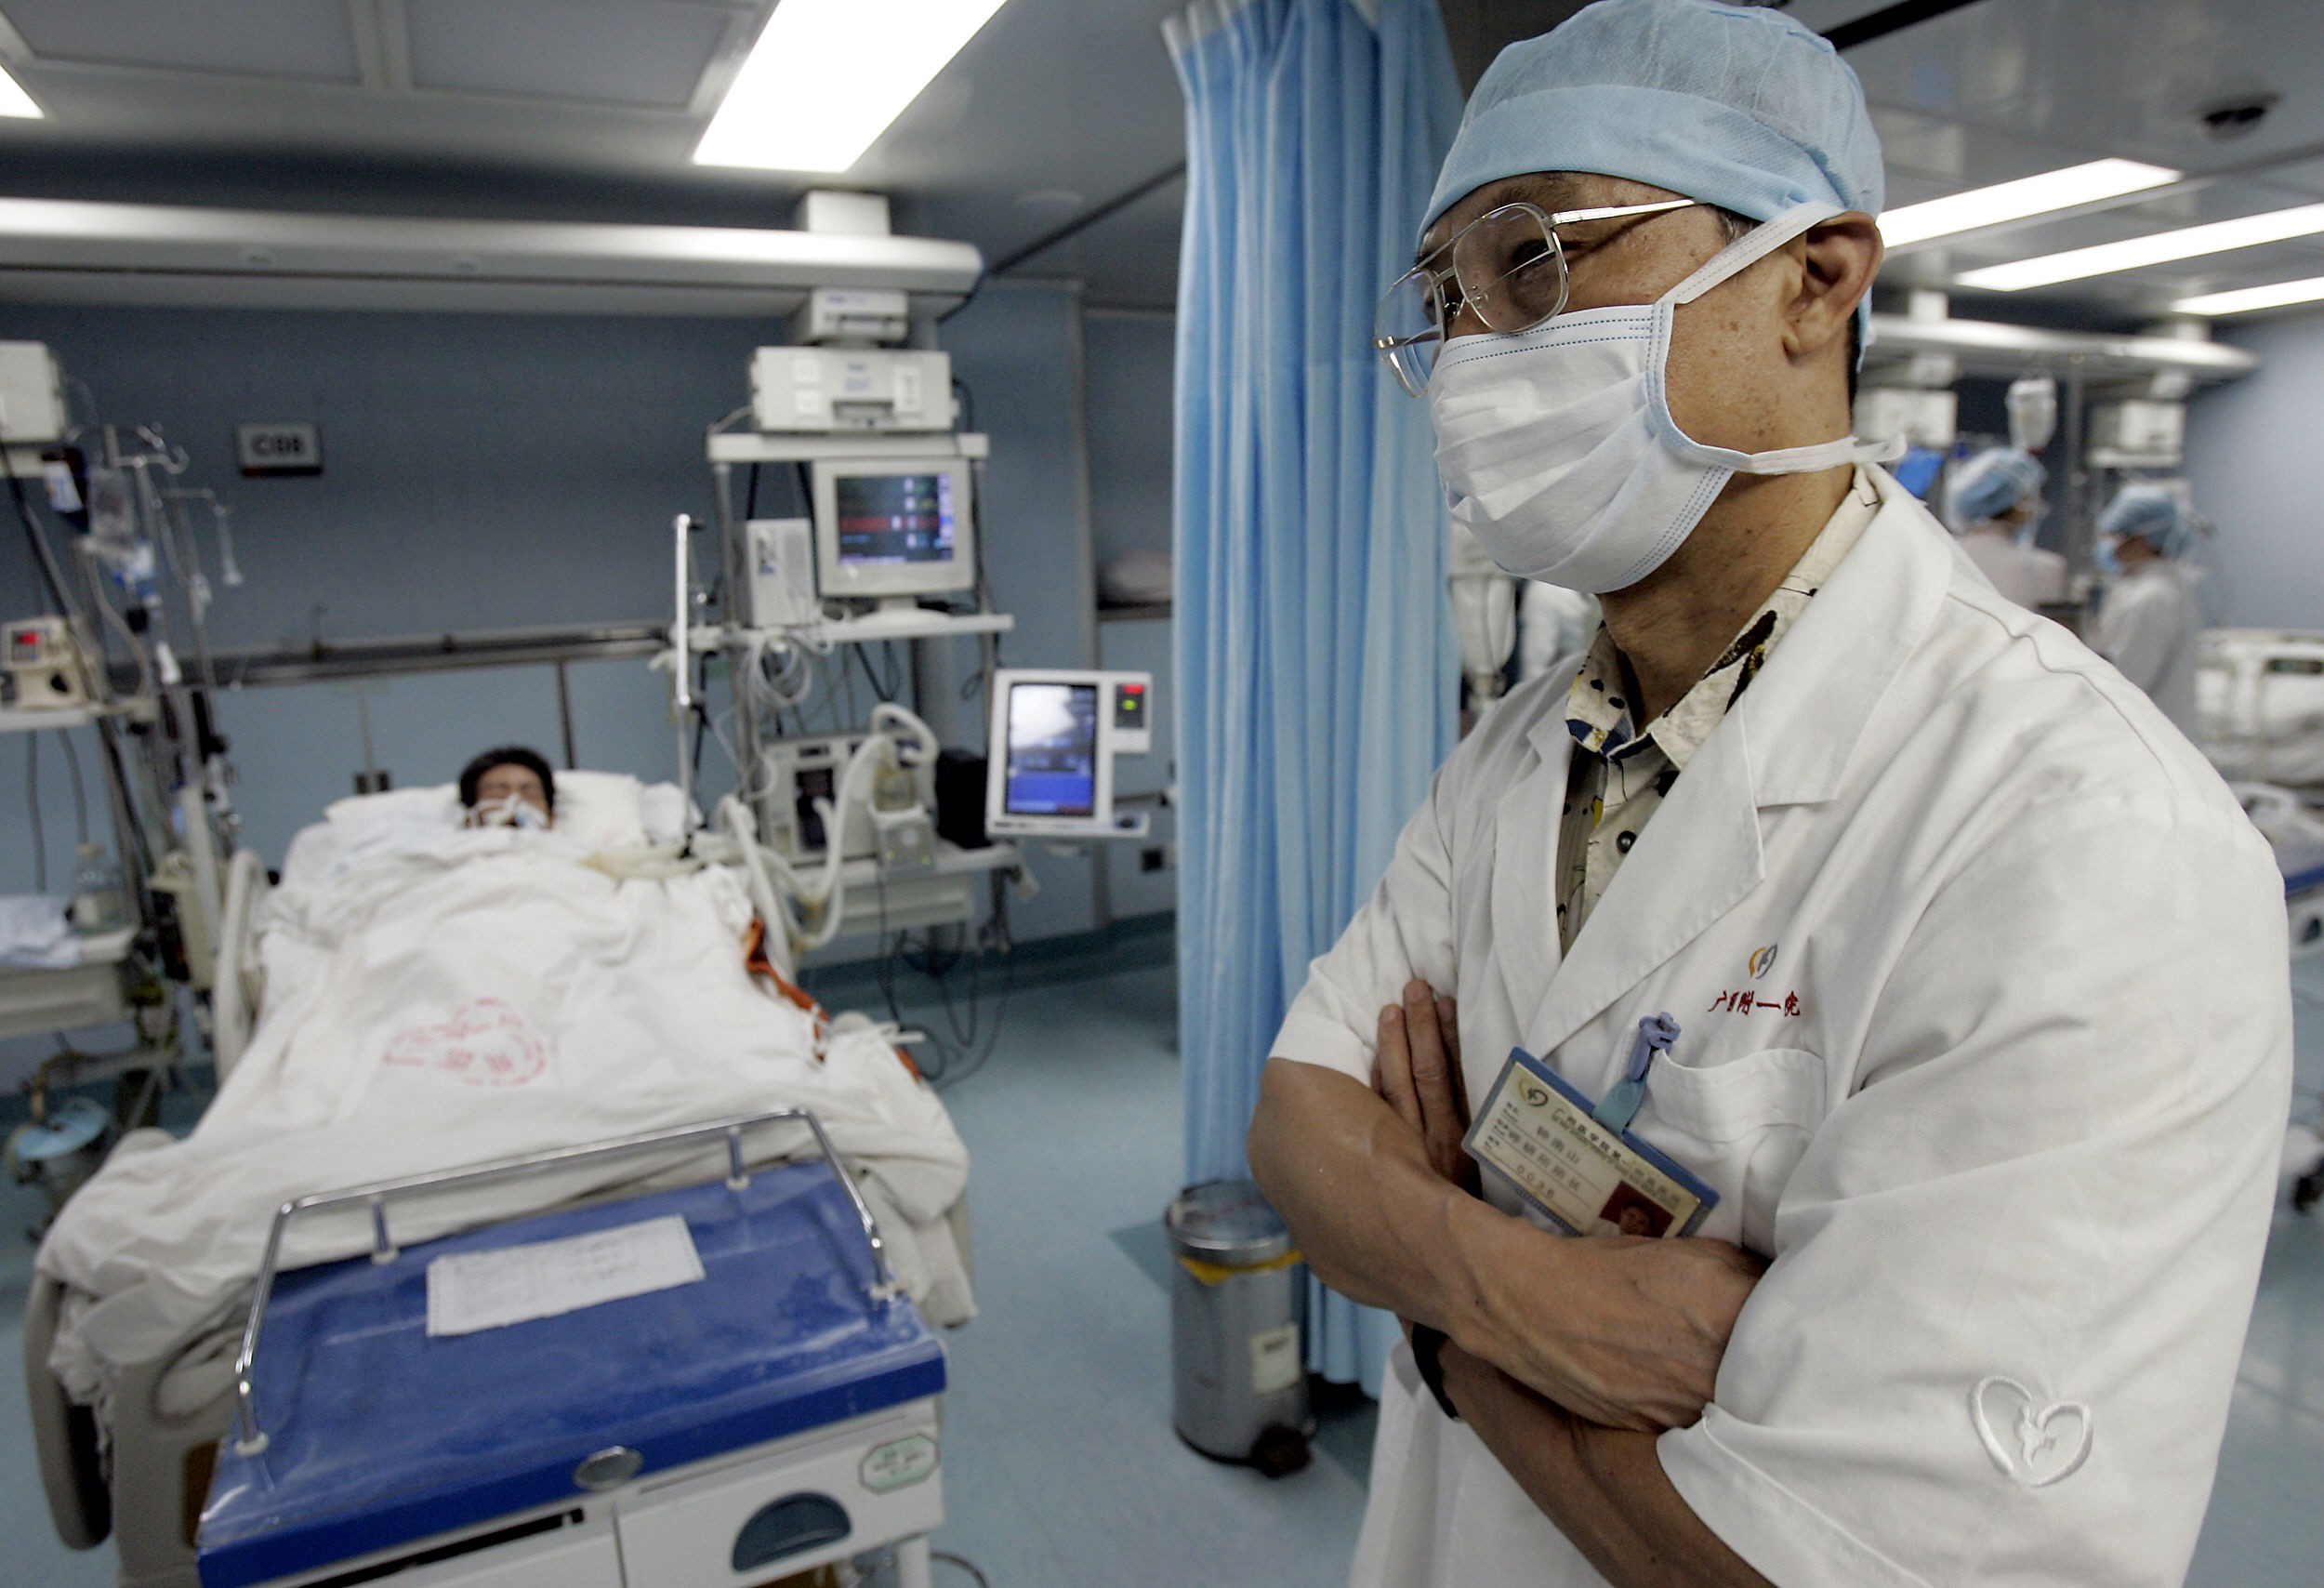 China's top SARS expert Zhong Nanshan during his rounds in the infectious disease ward.